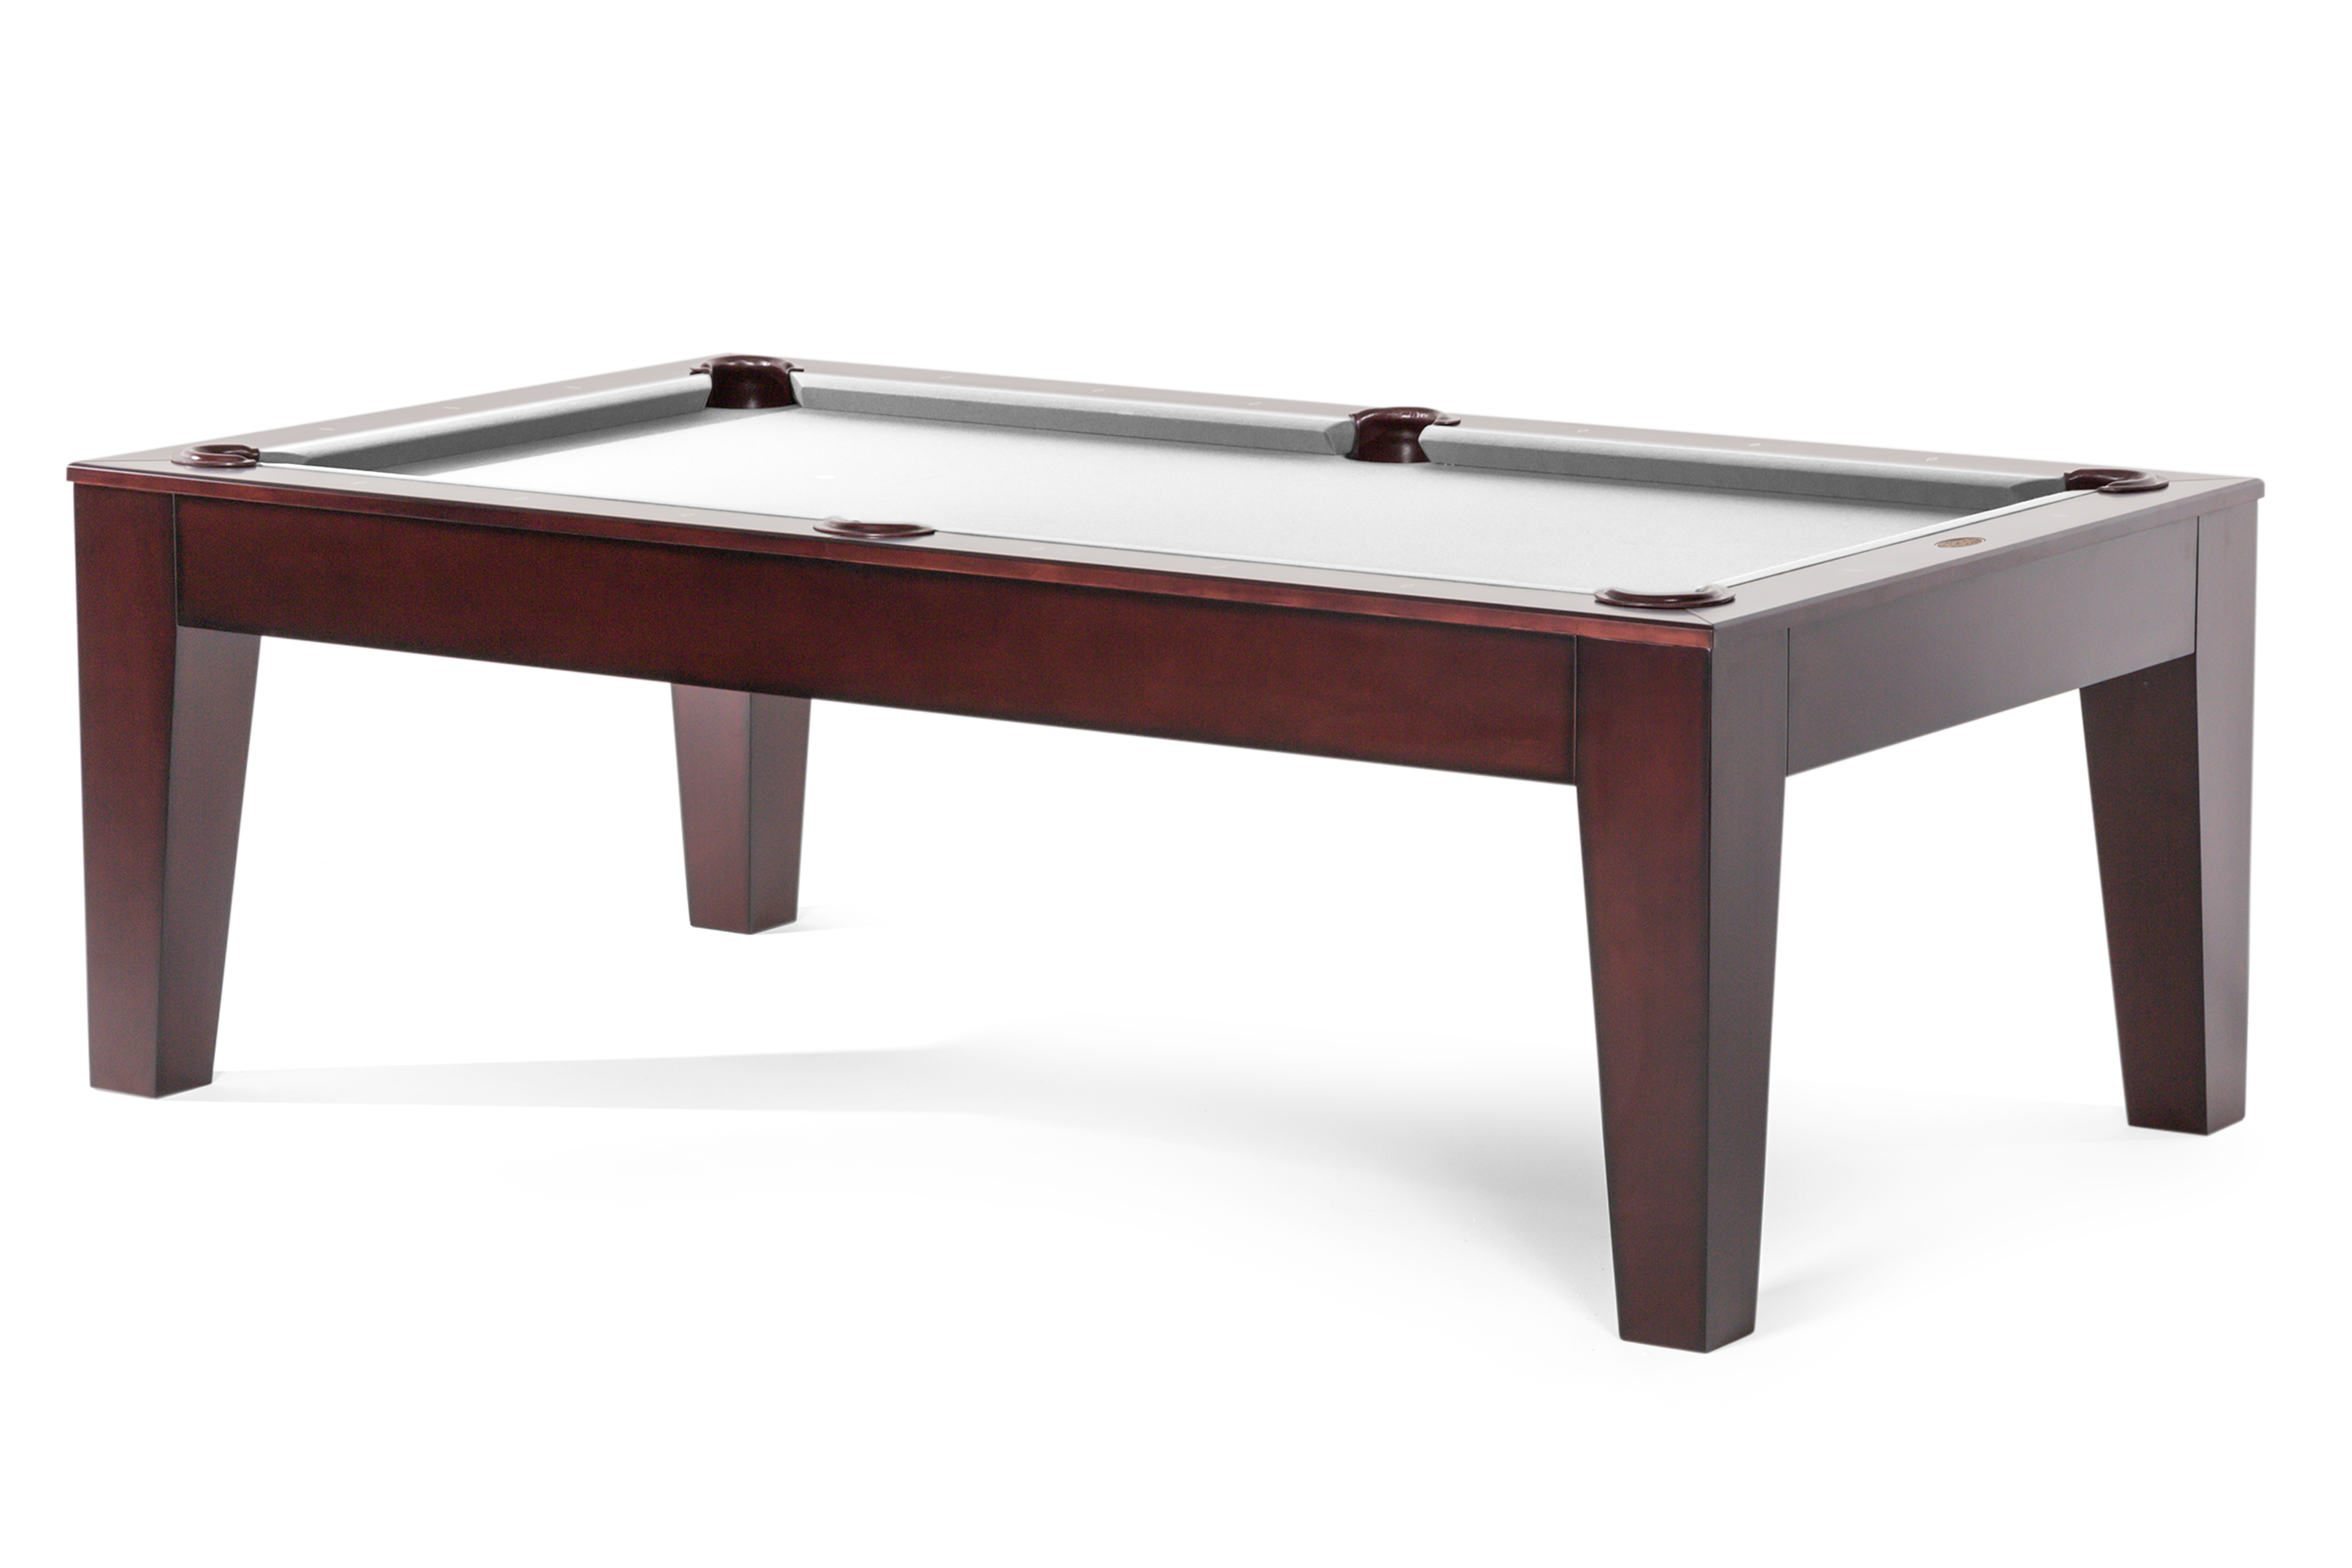 Superieur The Tapered Legs And Clean Lines Of Our Serotina Convertible Dining Pool  Table Will Be A Great Match For Modern Styles In Dining And Game Rooms.